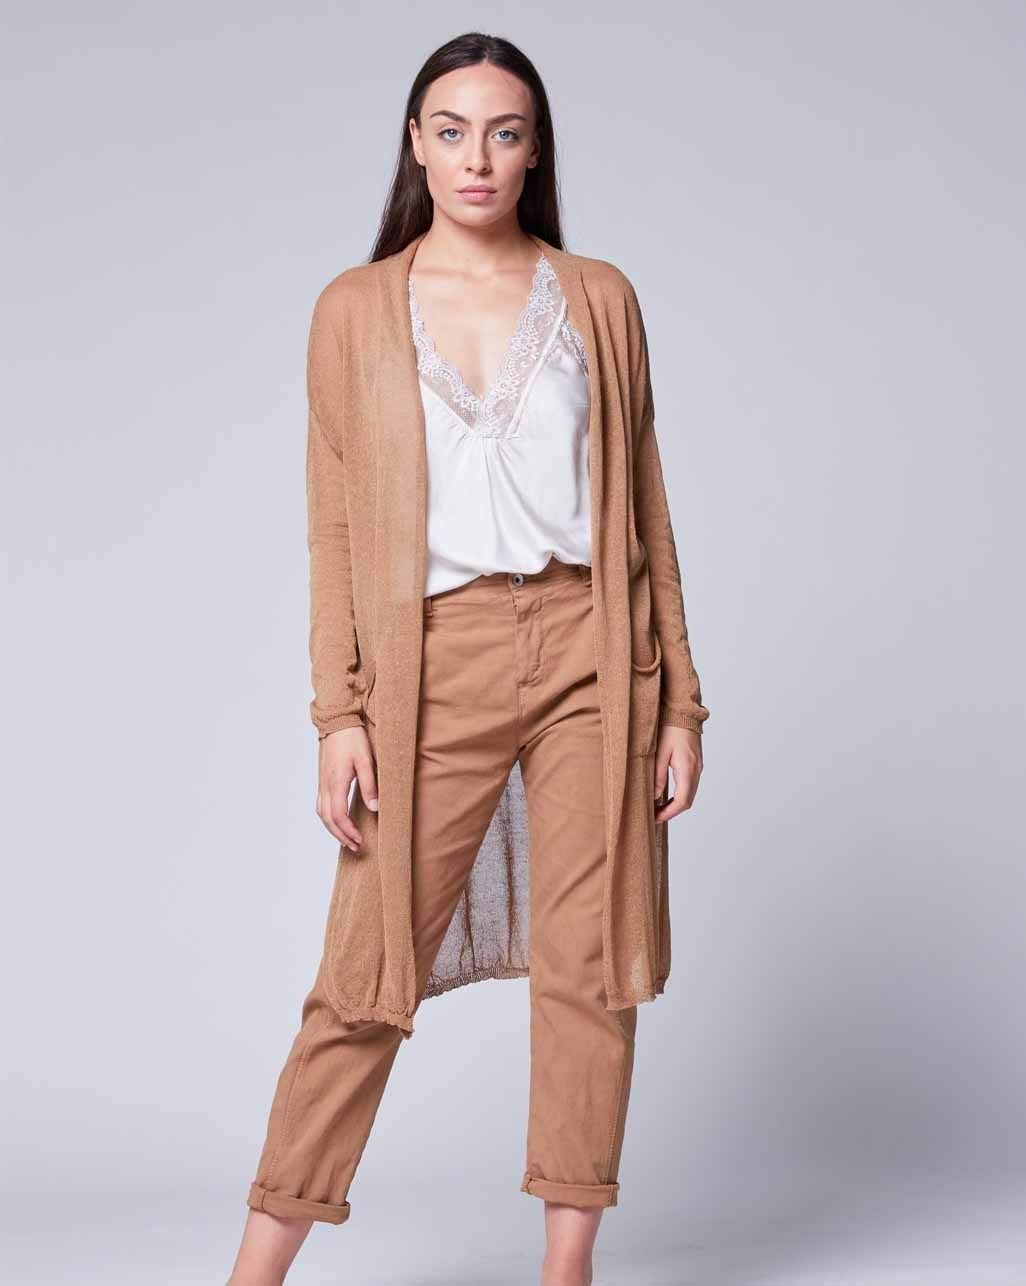 Sheer Camel Cardigan